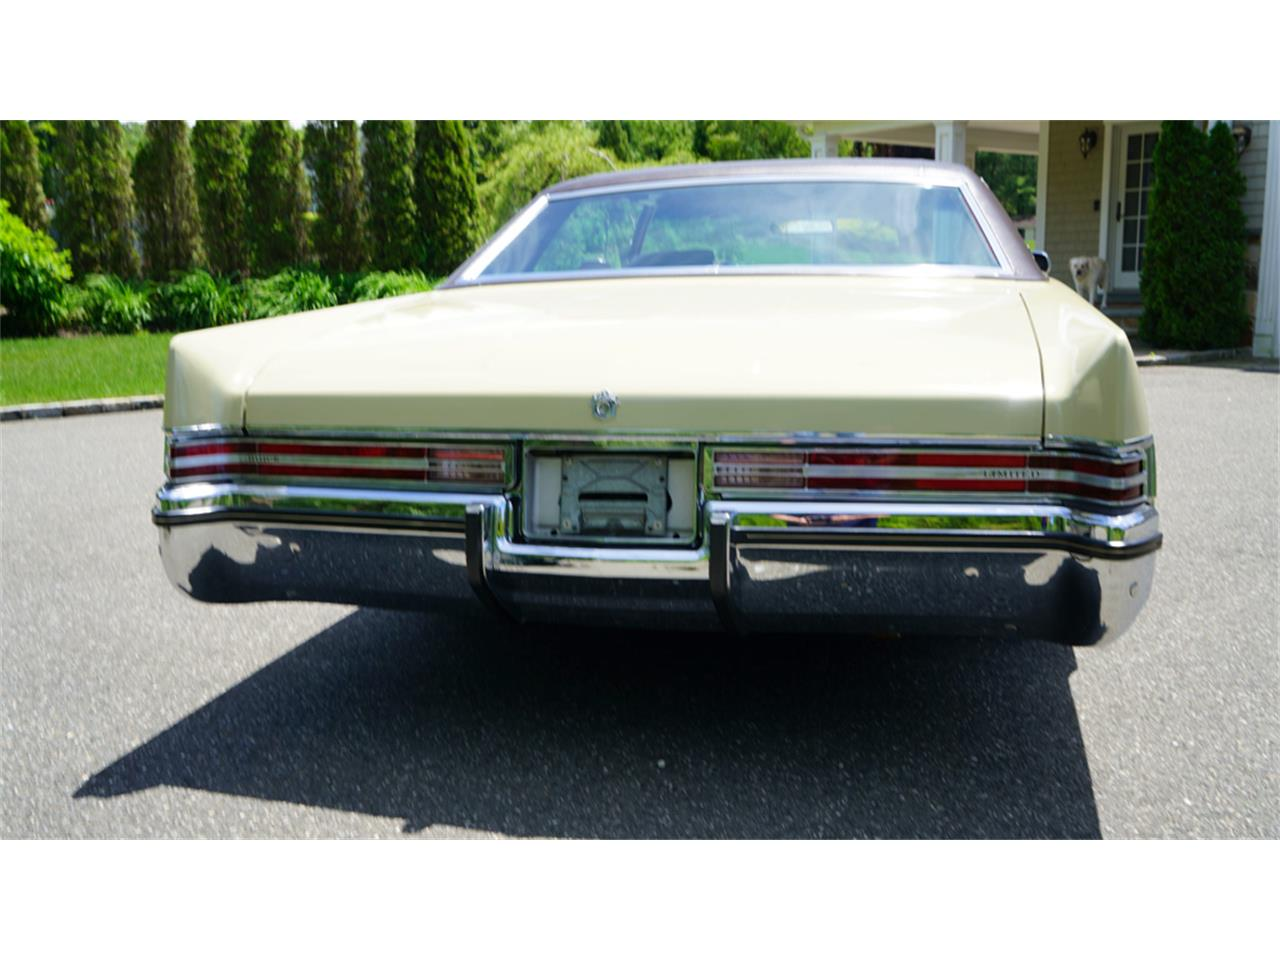 Large Picture of 1972 Buick Electra 225 located in New York - $32,500.00 Offered by Fiore Motor Classics - QAJE